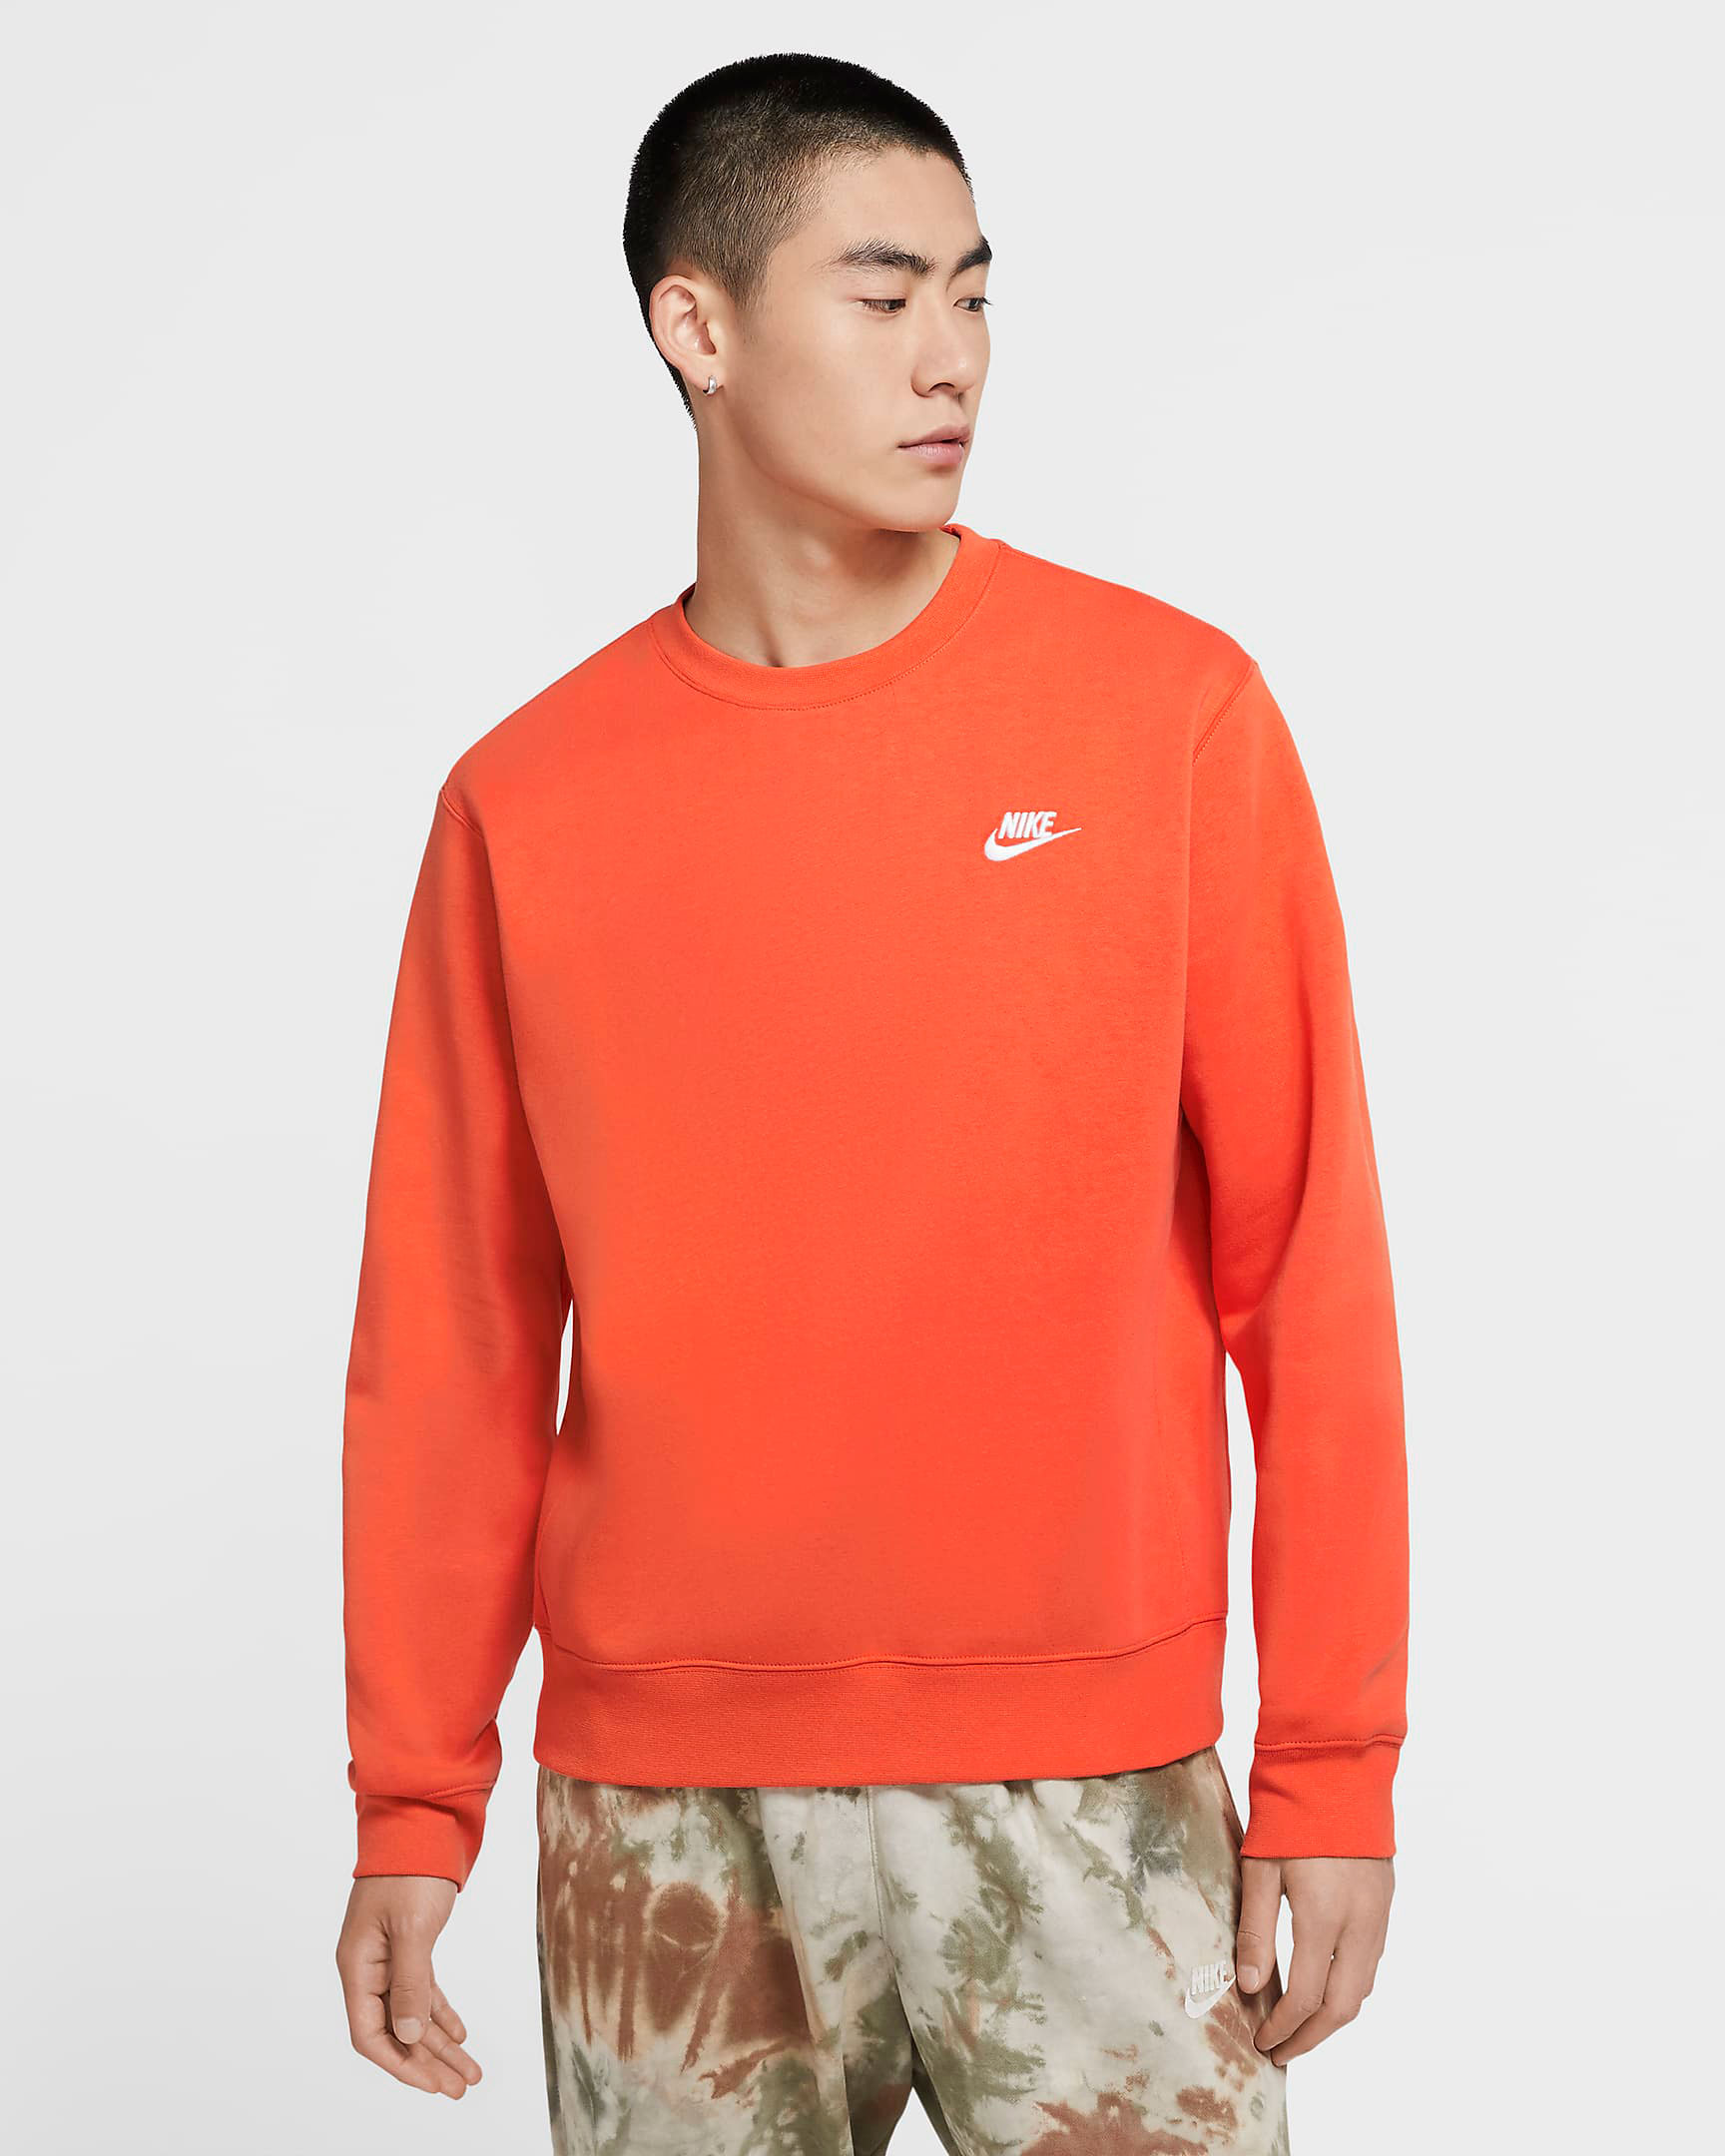 nike-club-fleece-crew-sweatshirt-orange